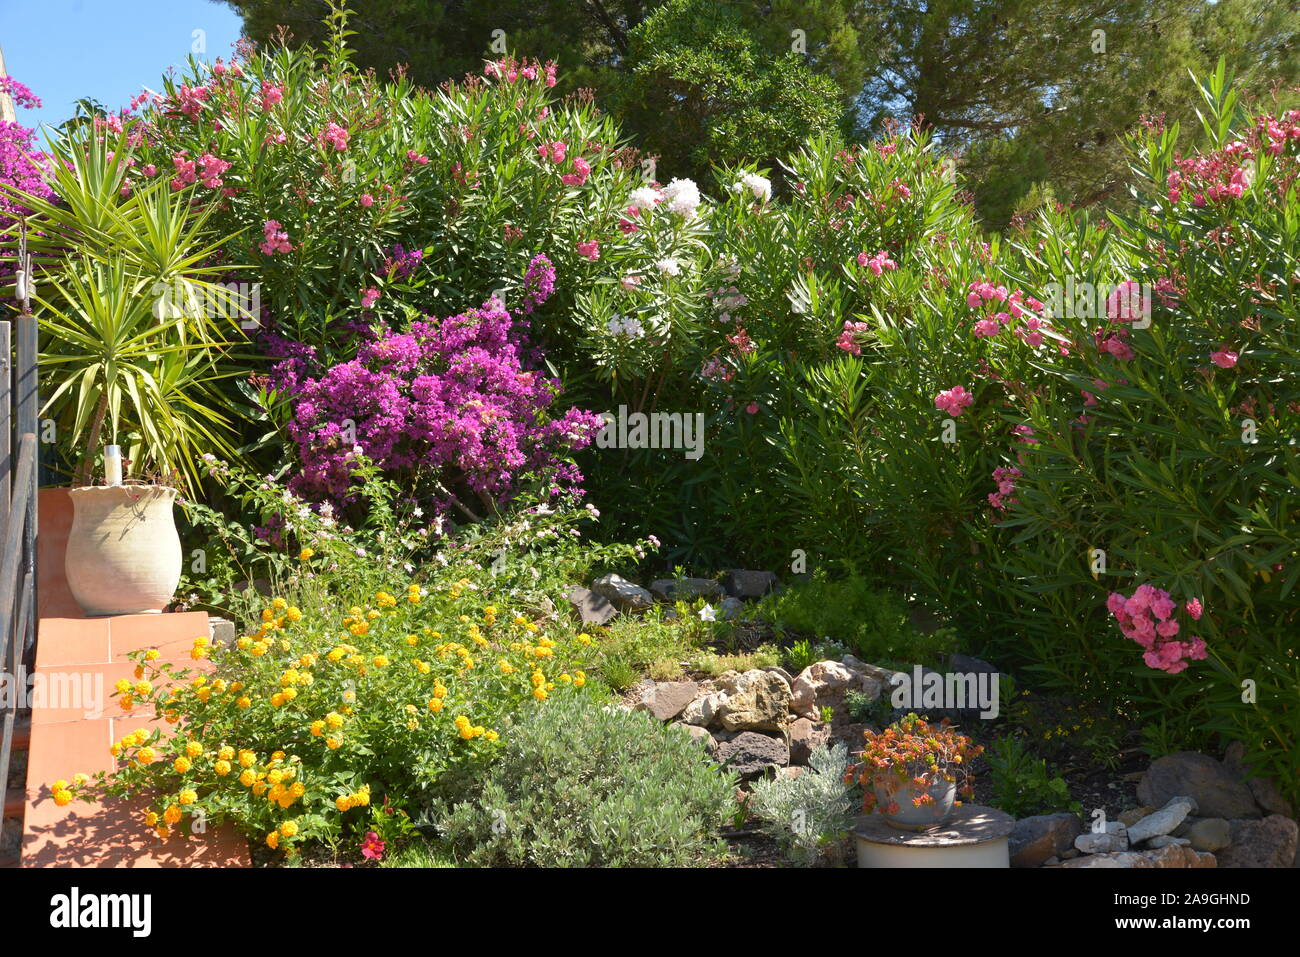 Mediterranean Gardens In Six Fours France Provence Stock Photo